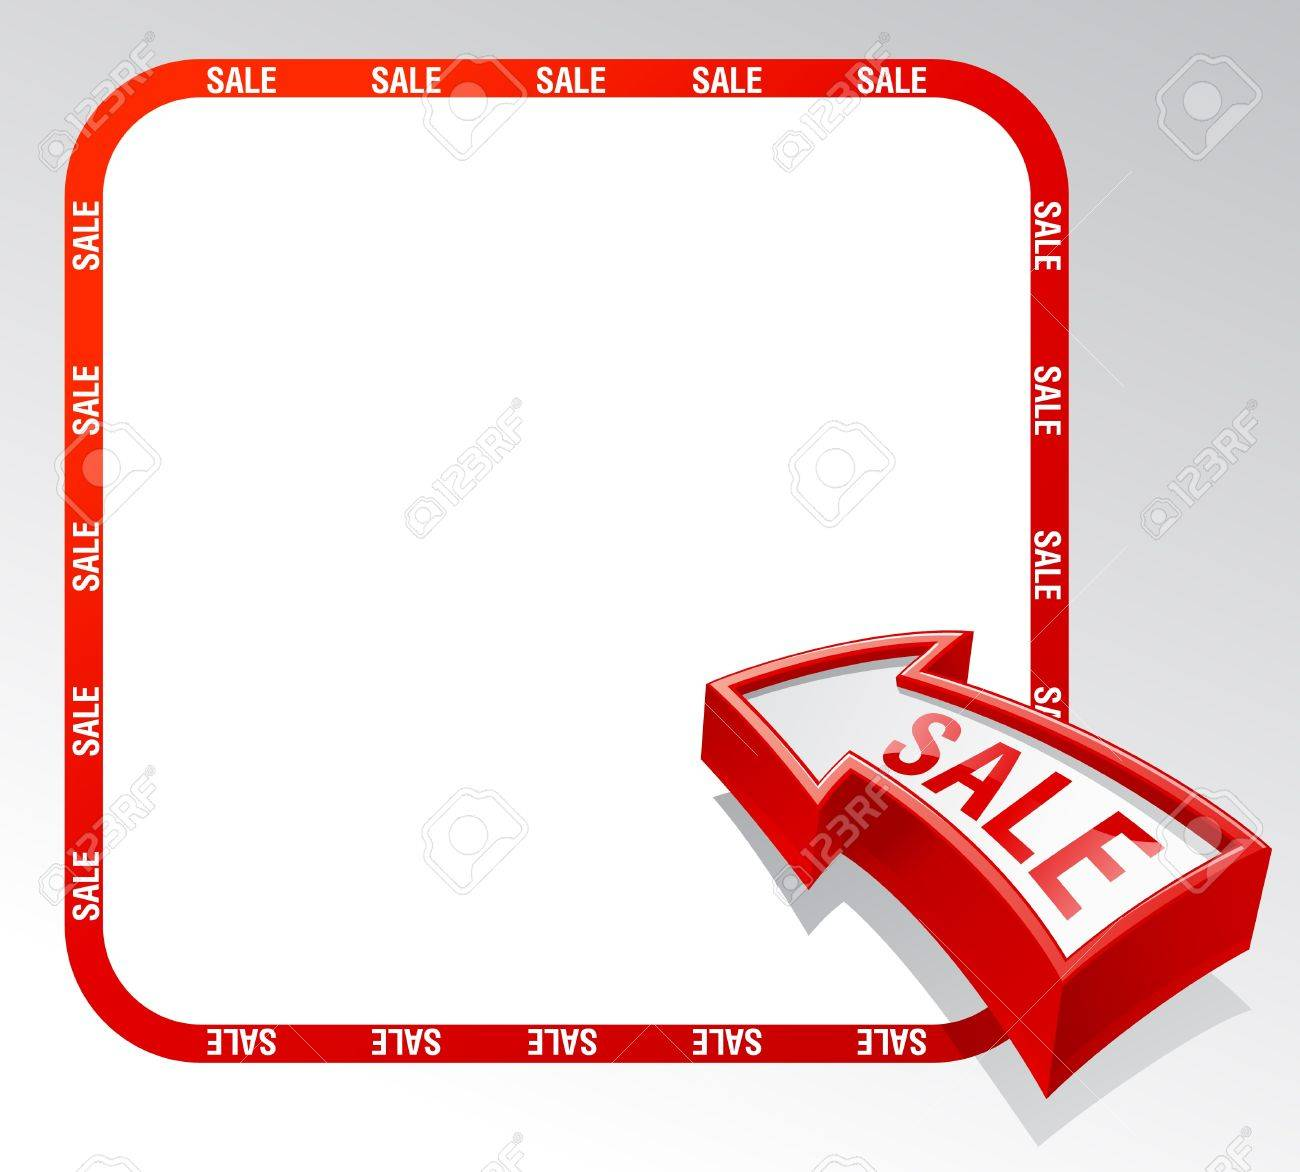 Sale arrow banner with place for text. - 9932574